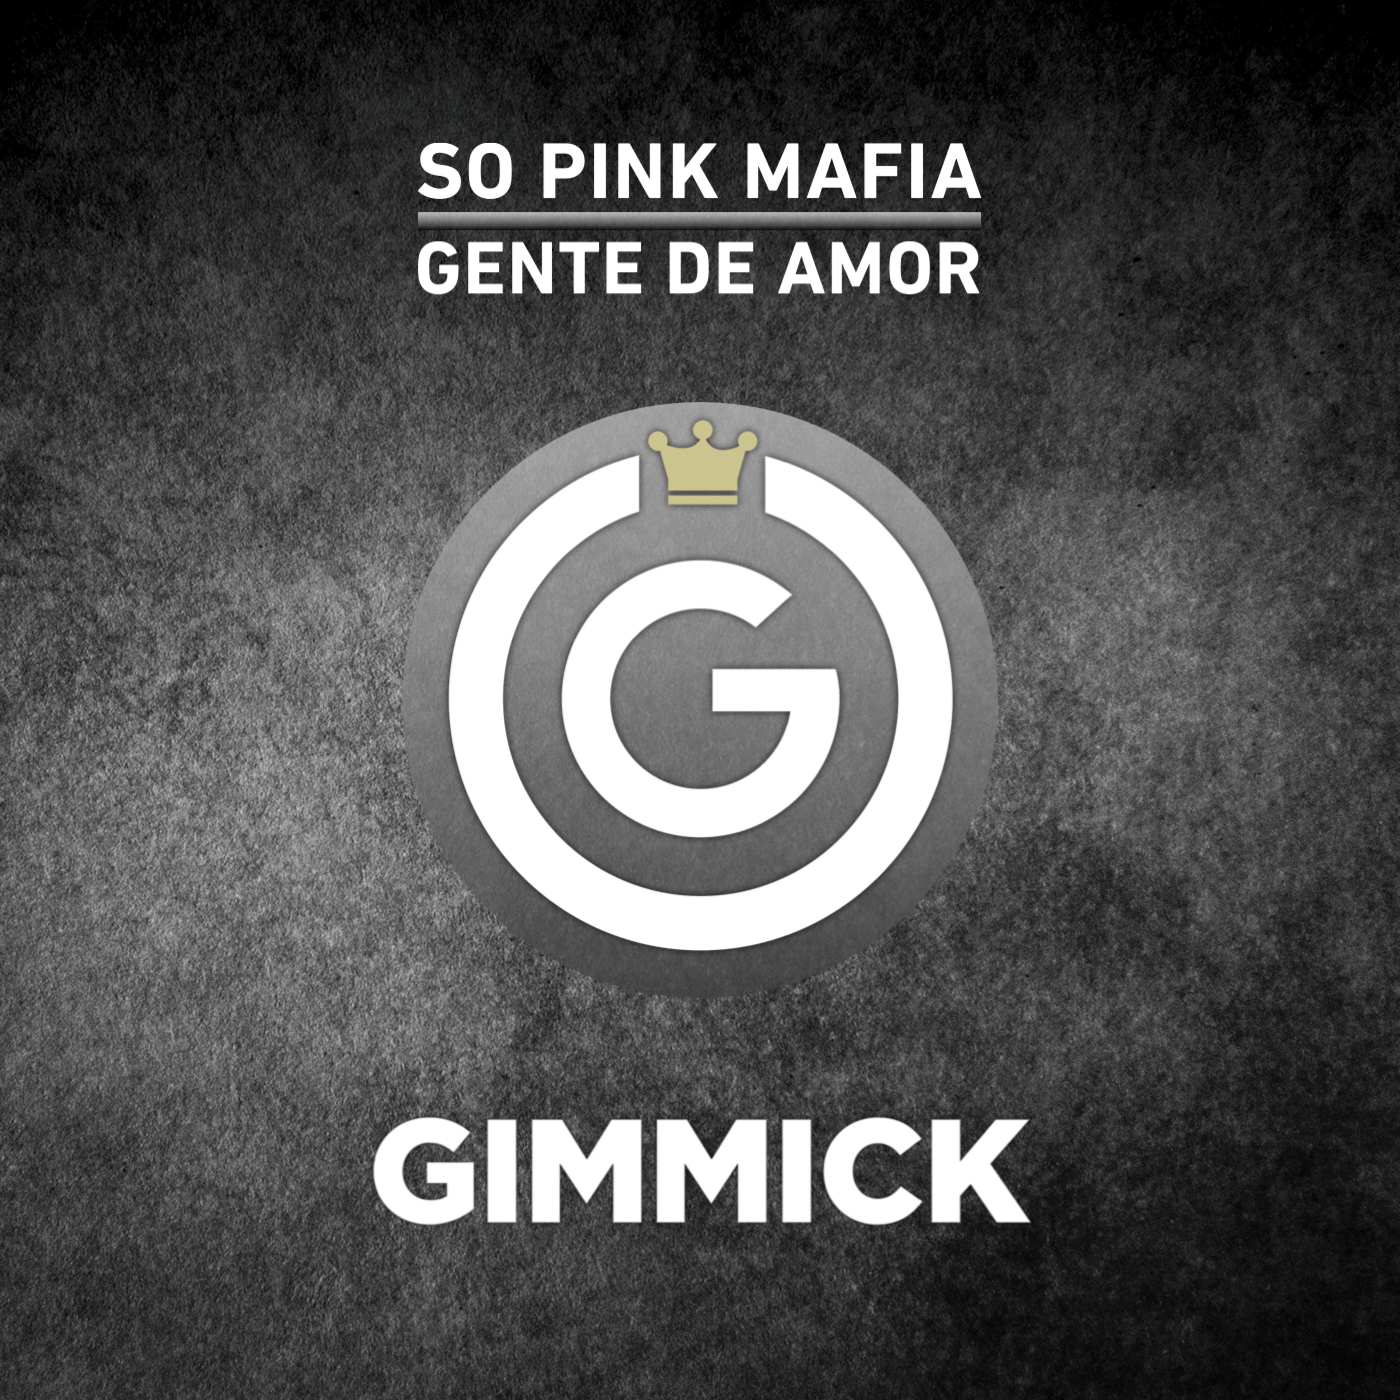 Gente de amor - This is my second single, and it ranks straight number 1 in the charts!